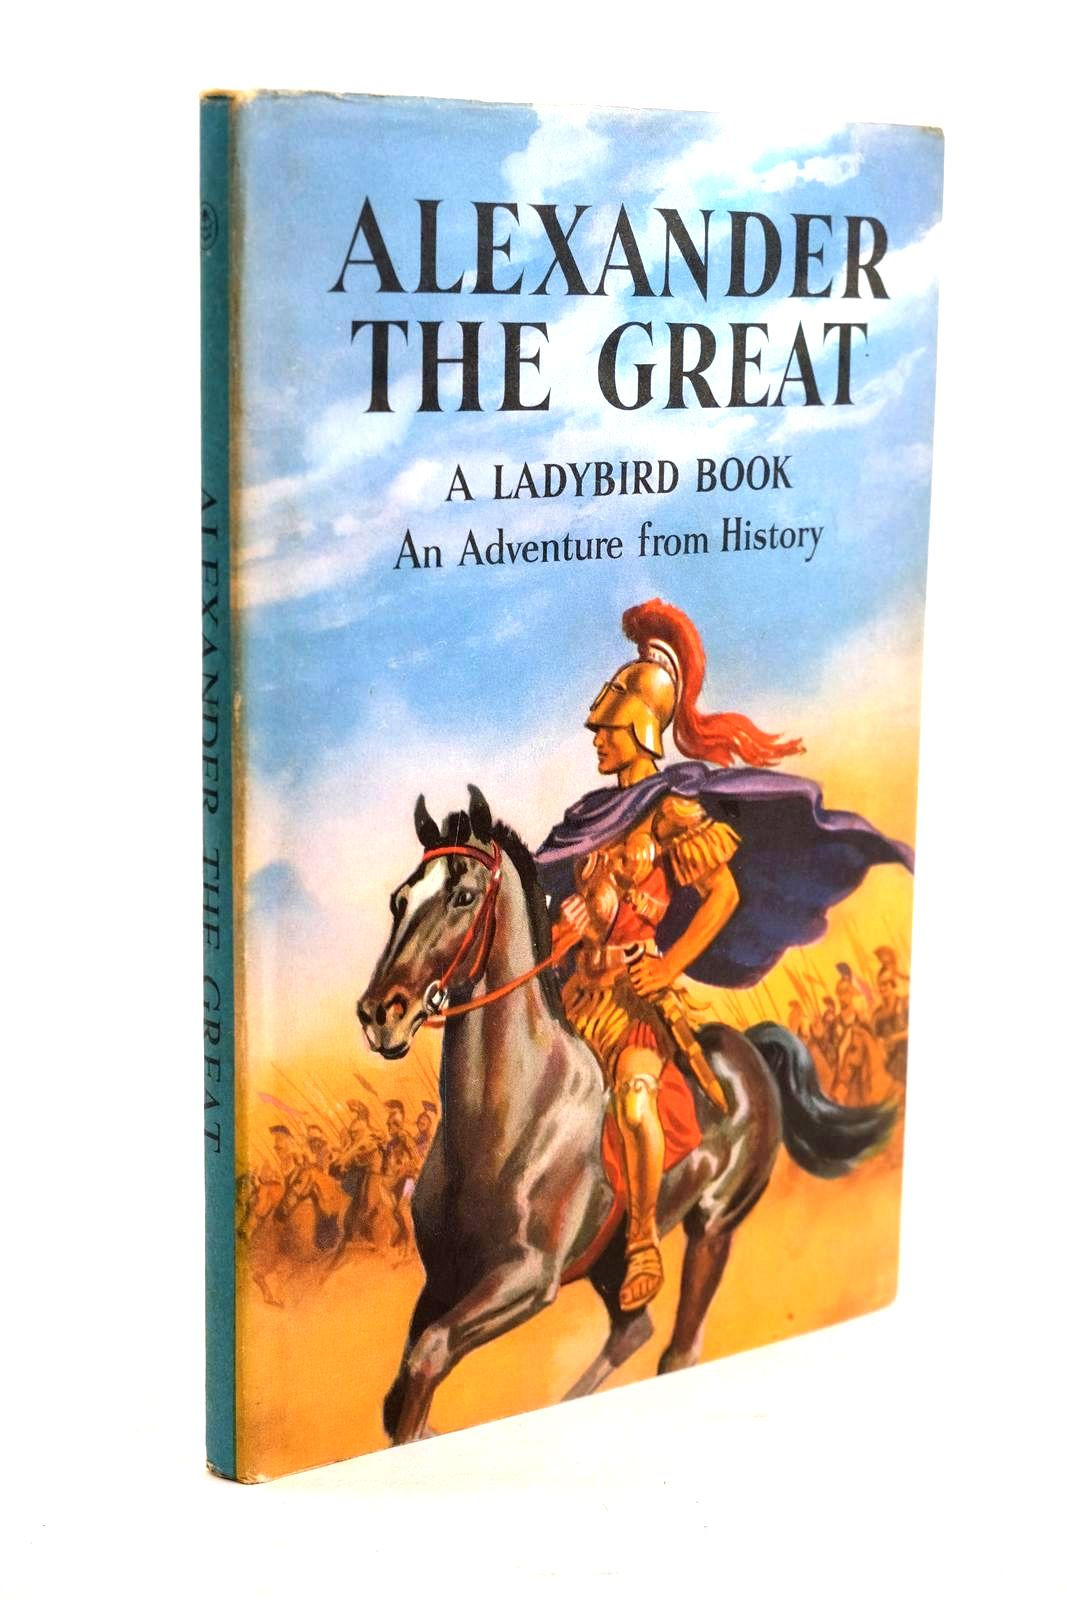 Photo of ALEXANDER THE GREAT written by Peach, L. Du Garde illustrated by Kenney, John published by Wills & Hepworth Ltd. (STOCK CODE: 1320624)  for sale by Stella & Rose's Books